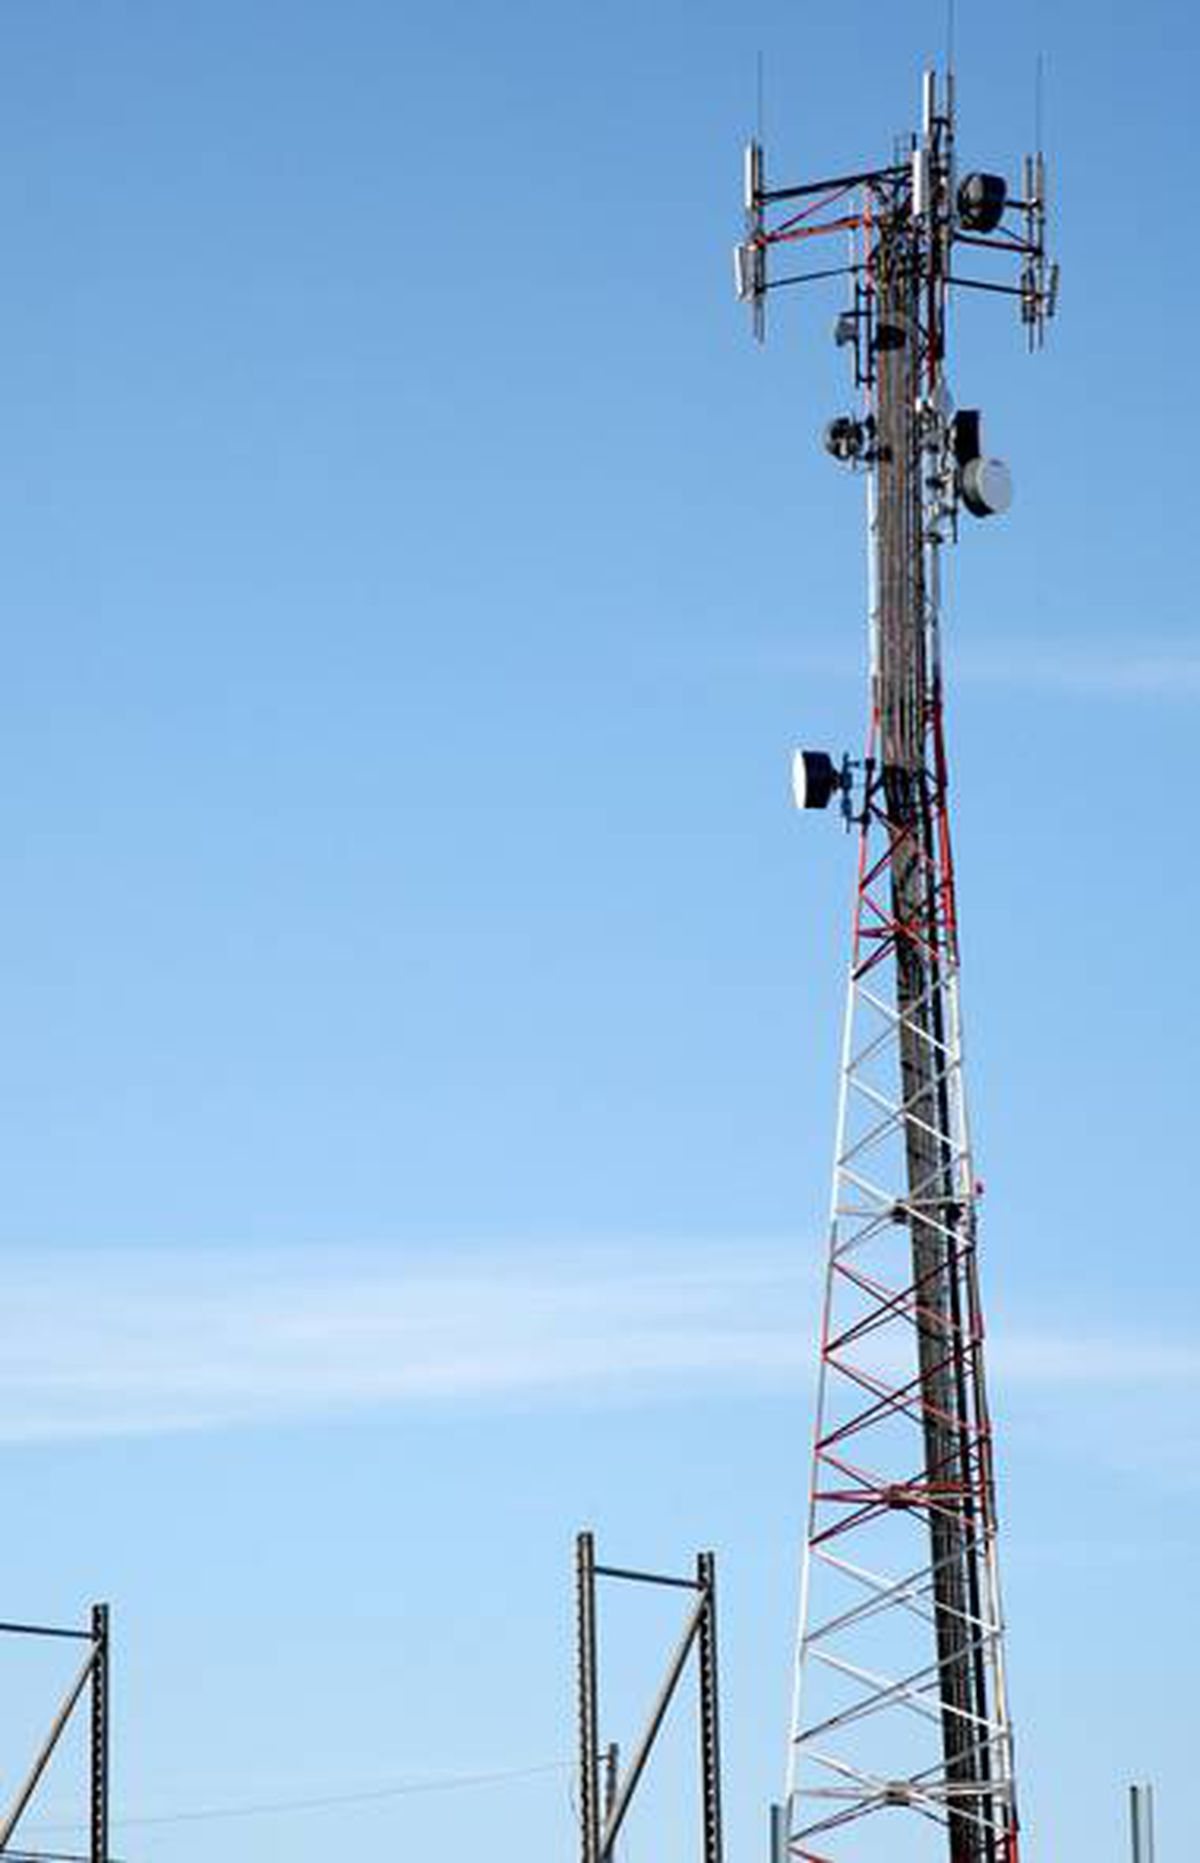 Wireless Internet signals from cellular towers are a cheaper solution than wired networks and are widely available (for around $65 per month for 3 Mbps), but the signal can be blocked by hills, mountains and valleys, even trees.